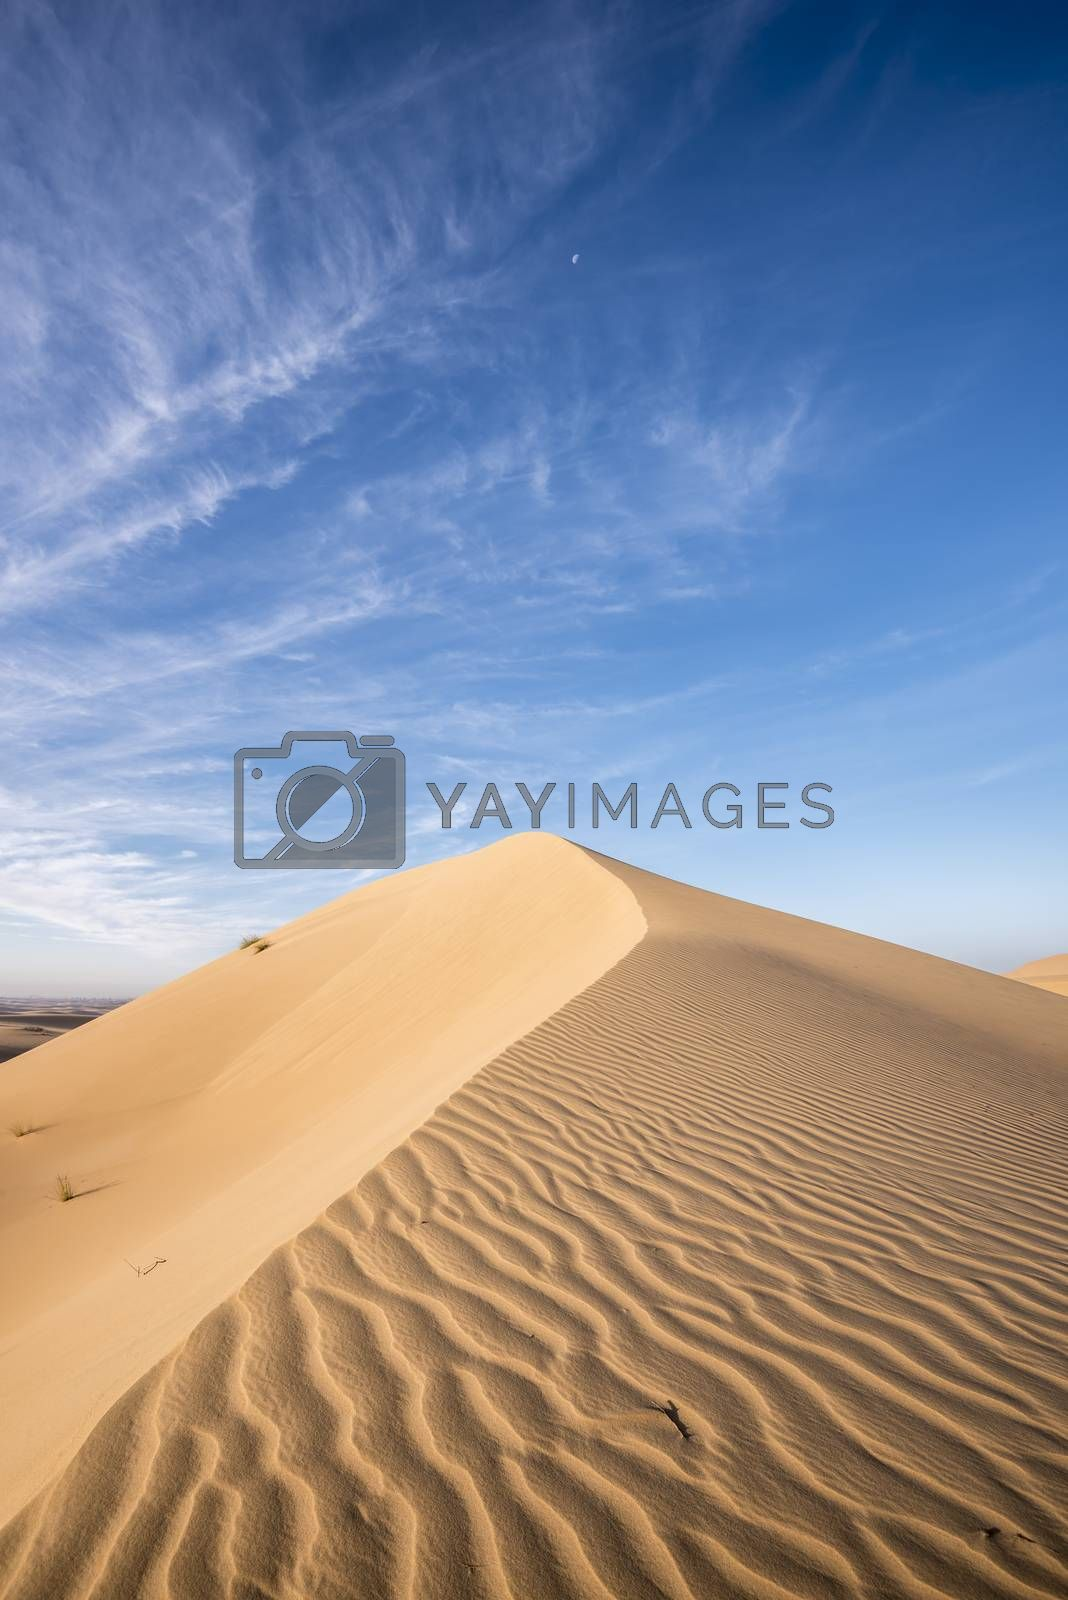 Top of a dunes of red sand agaisnt blue sky and few clouds, Dubai Emirates, United Arab Emirates, UAE, arabian peninsula